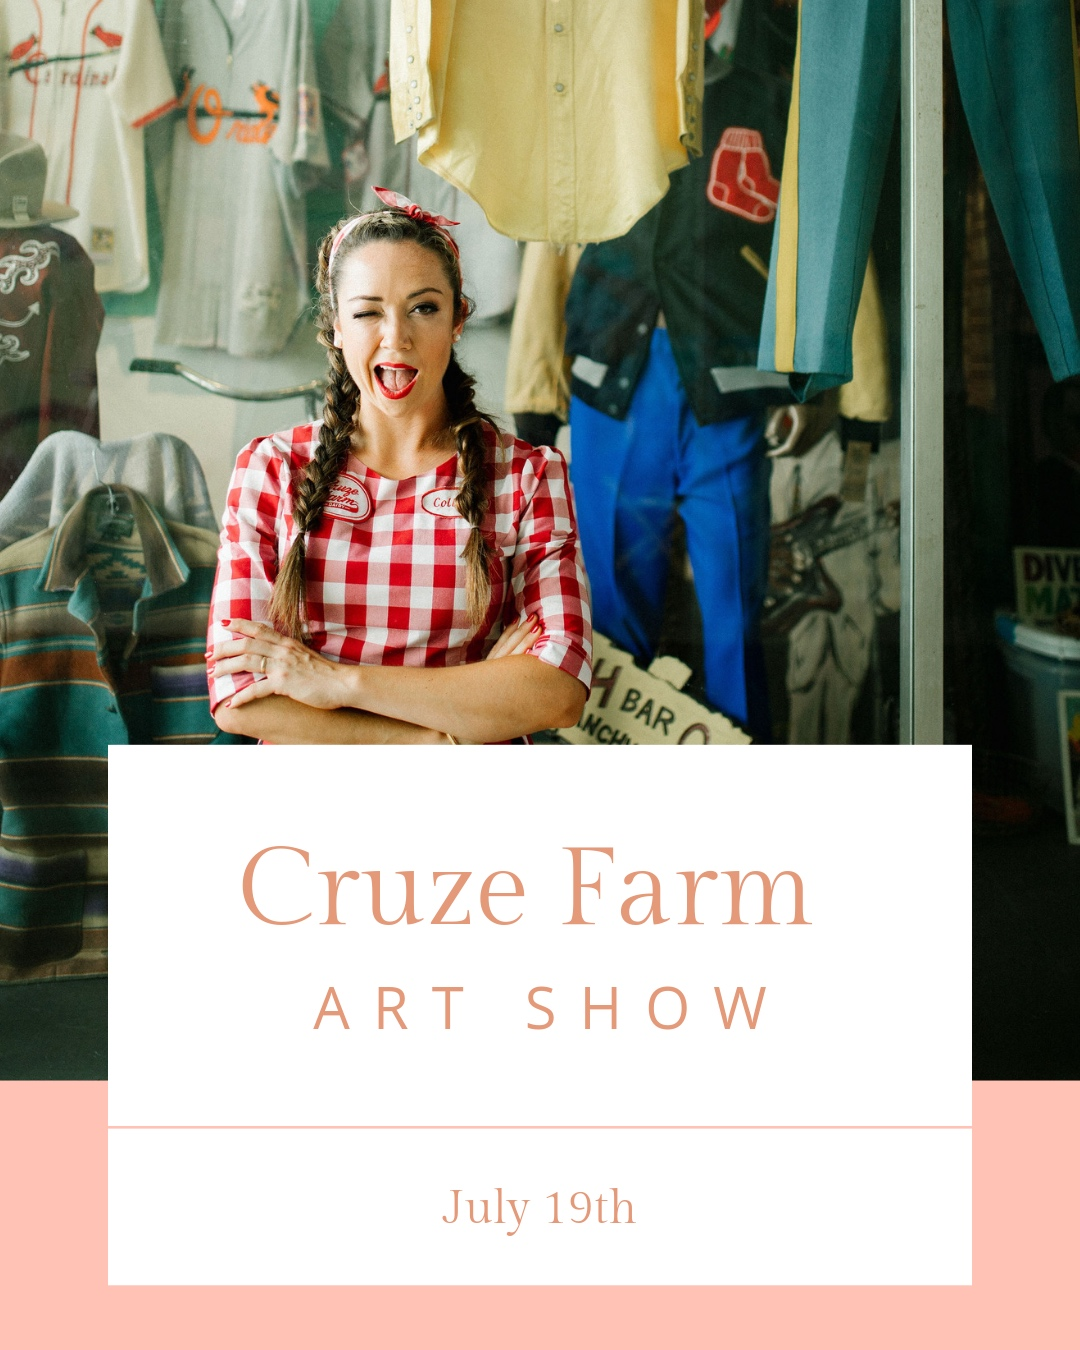 At The Asbury Ice Cream House - We are excited to announce our second Cruze Farm! 20% of the proceeds from art that is bought will go to National YoungArts Foundation. National YoungArts Foundation is a charity that focuses on creating a community of philanthropy and support for young artists so that they feel encouraged and empowered to create their work. To learn more you can visit https://www.youngarts.org/about The deadlines are as follows!-July 10th Submissions are due. Click here-July 14th Selected Art is due at Asbury by 9:00PM-July 19th Art Show at 7:00PM